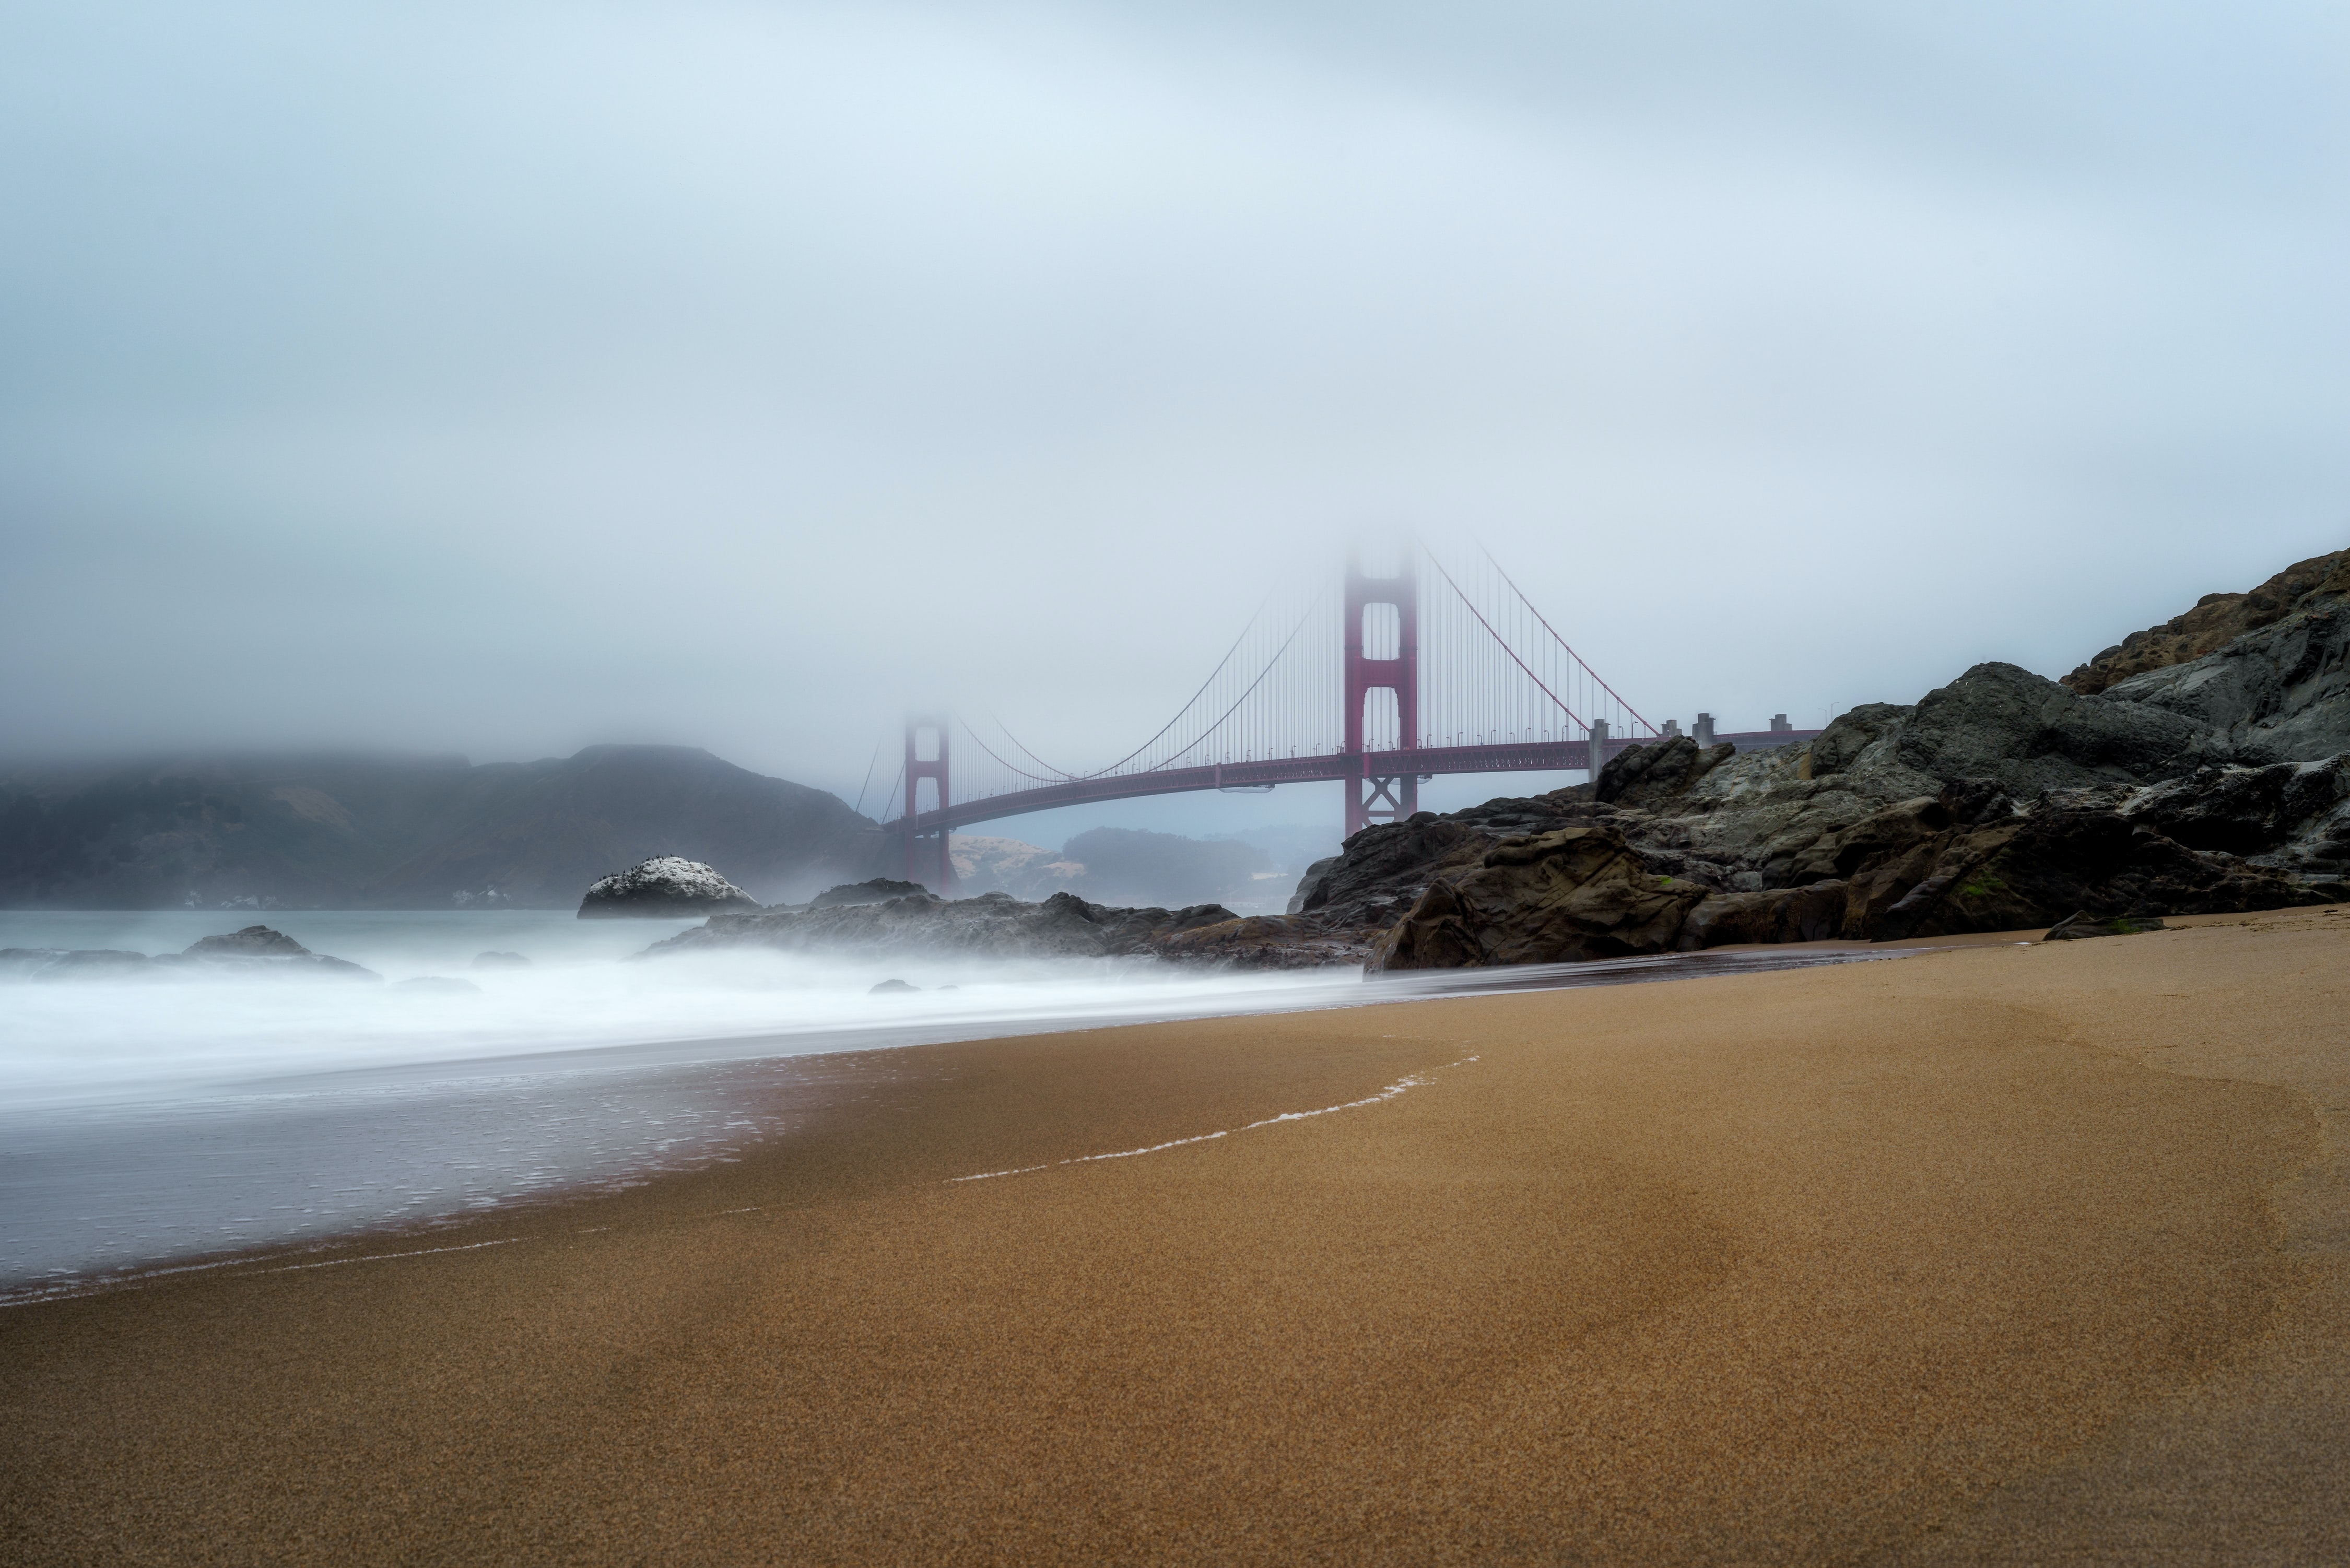 Golden Gate Bridge covered by fogs